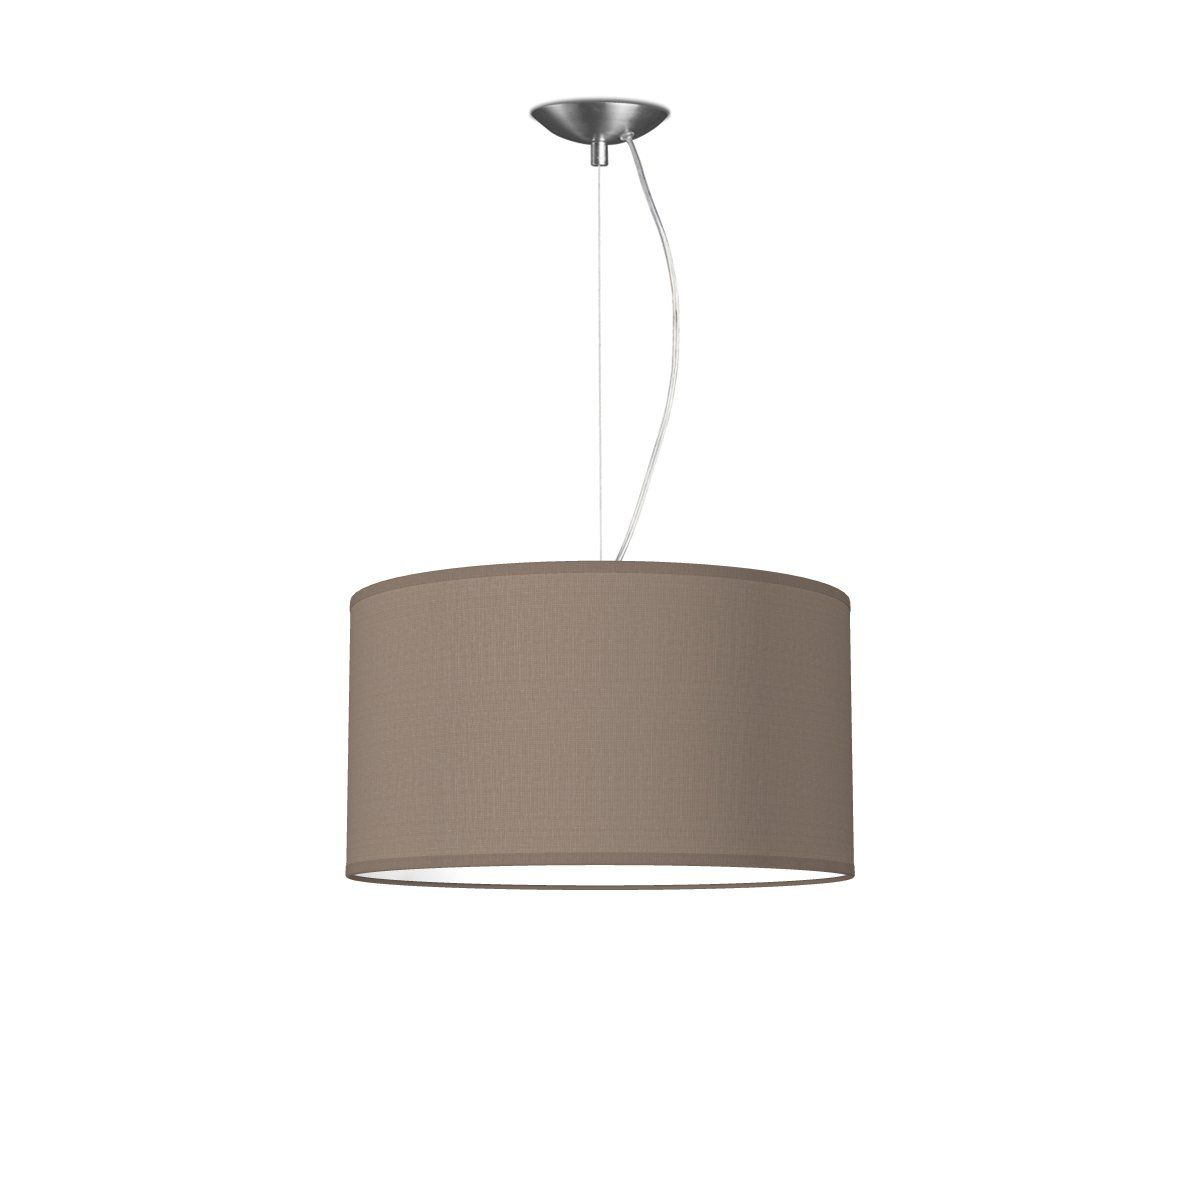 HOME SWEET HOME hanglamp basic deluxe bling Ø 40 cm - Funghi